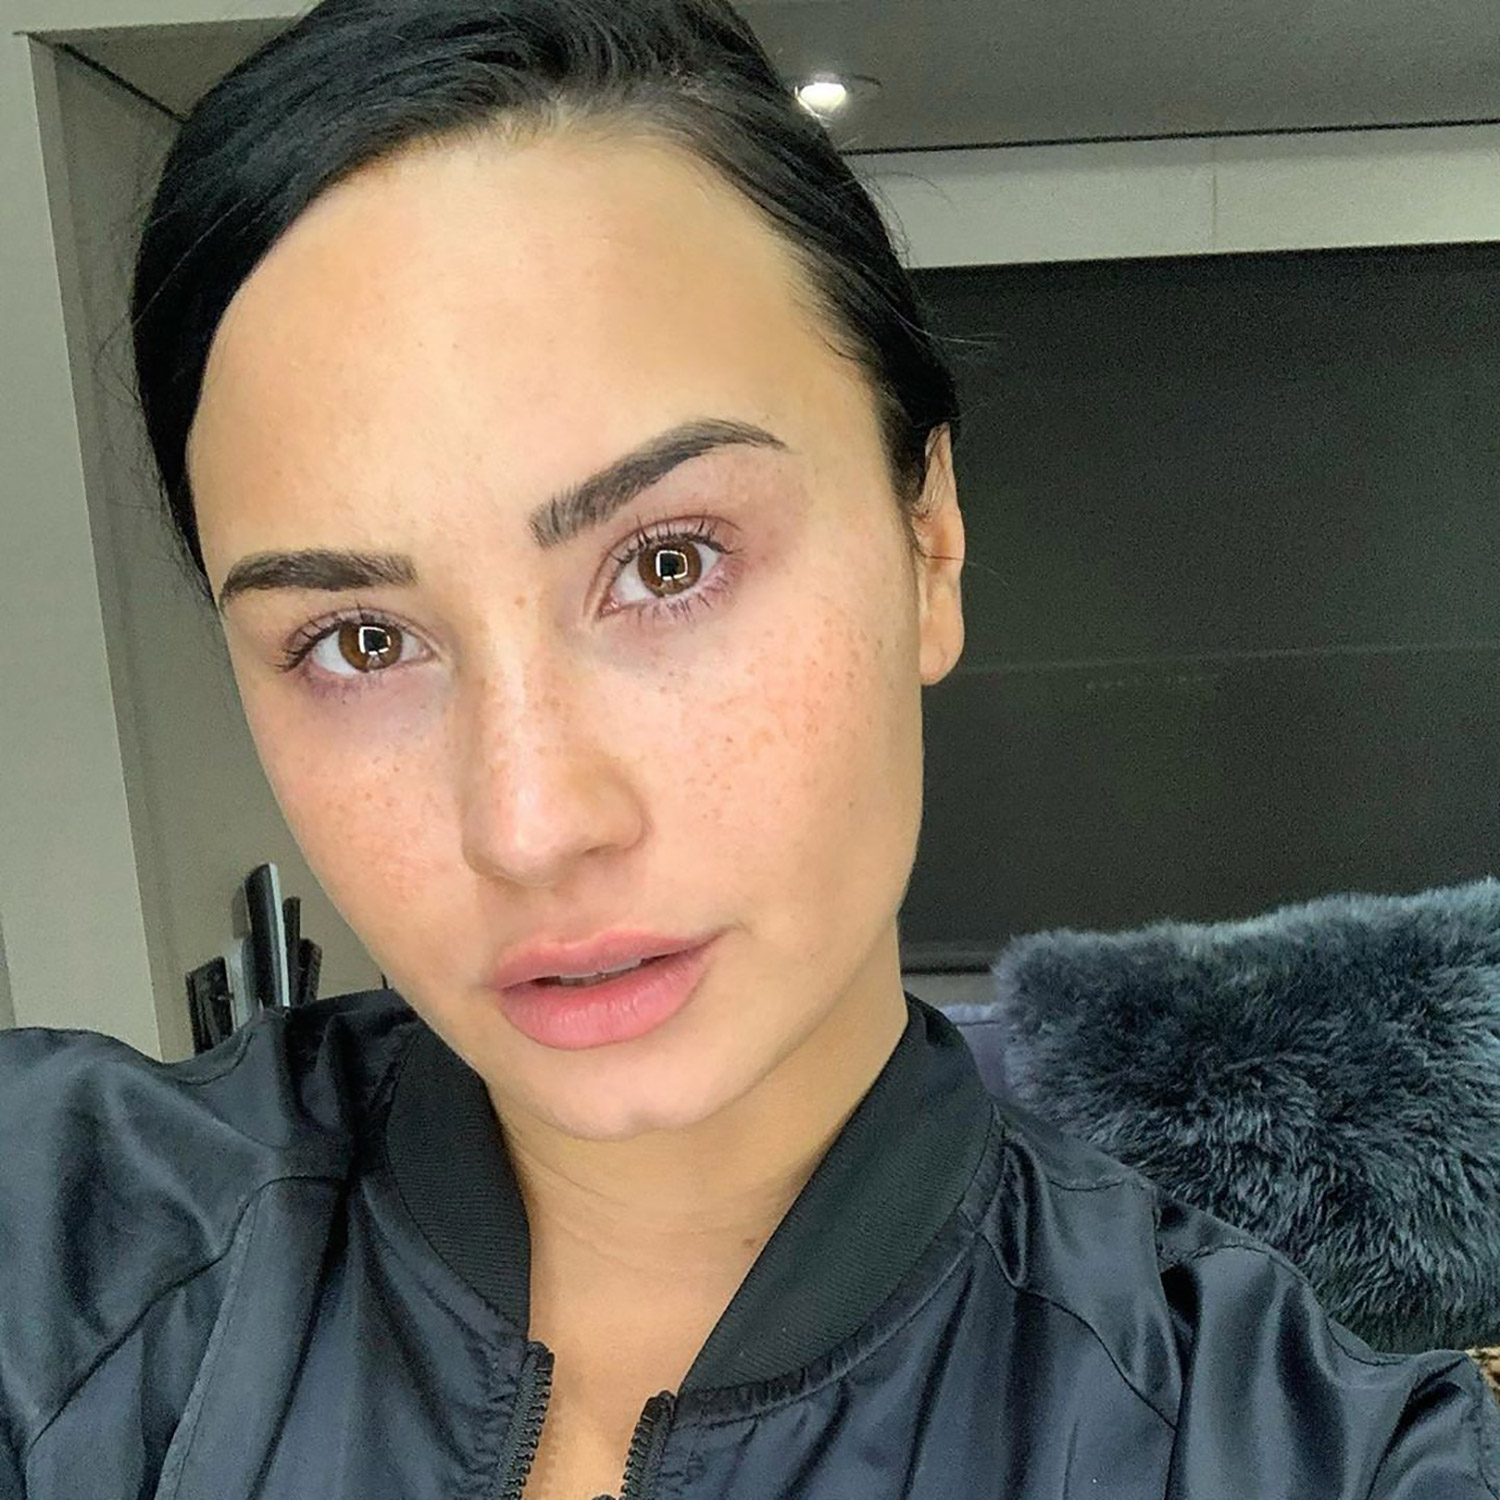 Demi Lovato Goes Makeup-Free in Glowing Bareface Selfie, Says She's 'Proud of My Booty Chin'